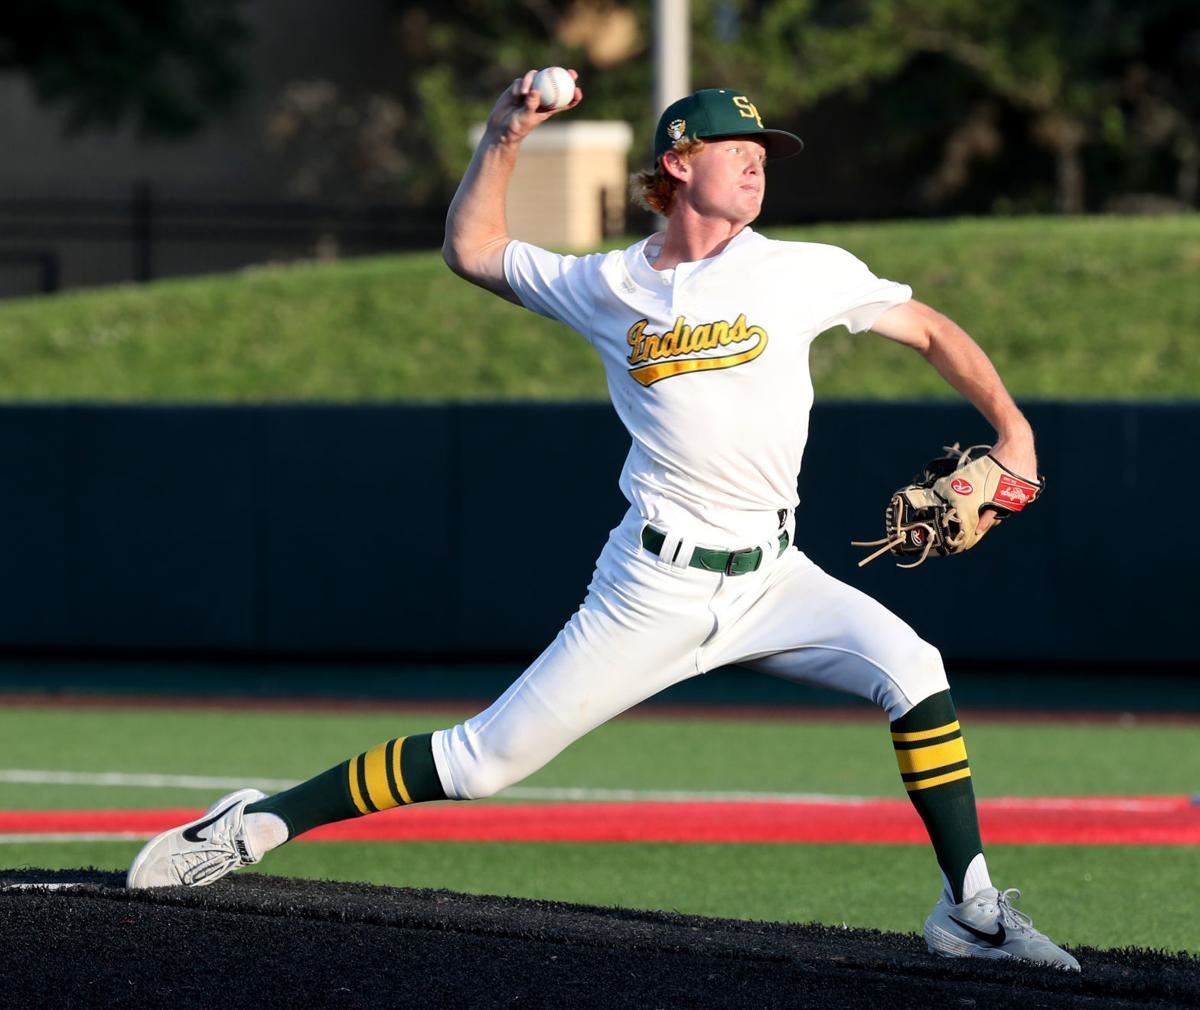 Santa Fe High School Junior, Rome Shubert, Named 2019 Galveston County Baseball Player of the Year